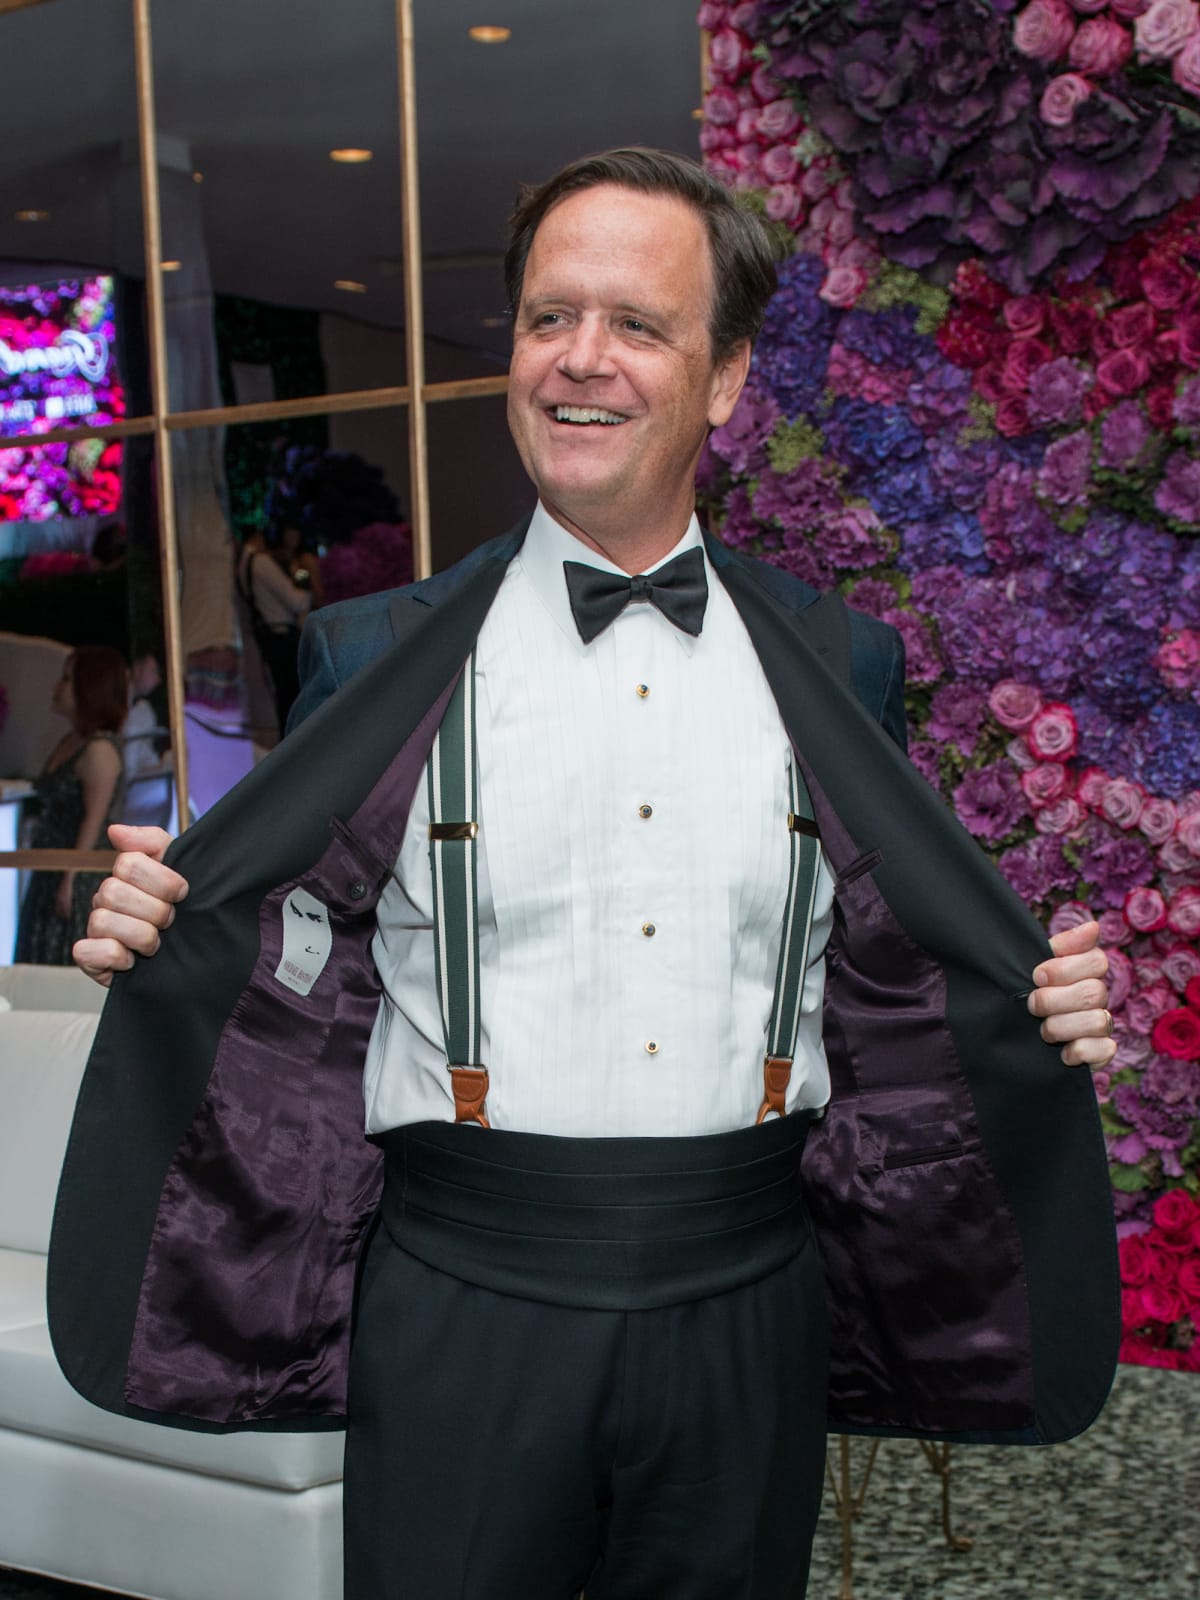 Christopher Gardner at MFAH Grand Gala Ball